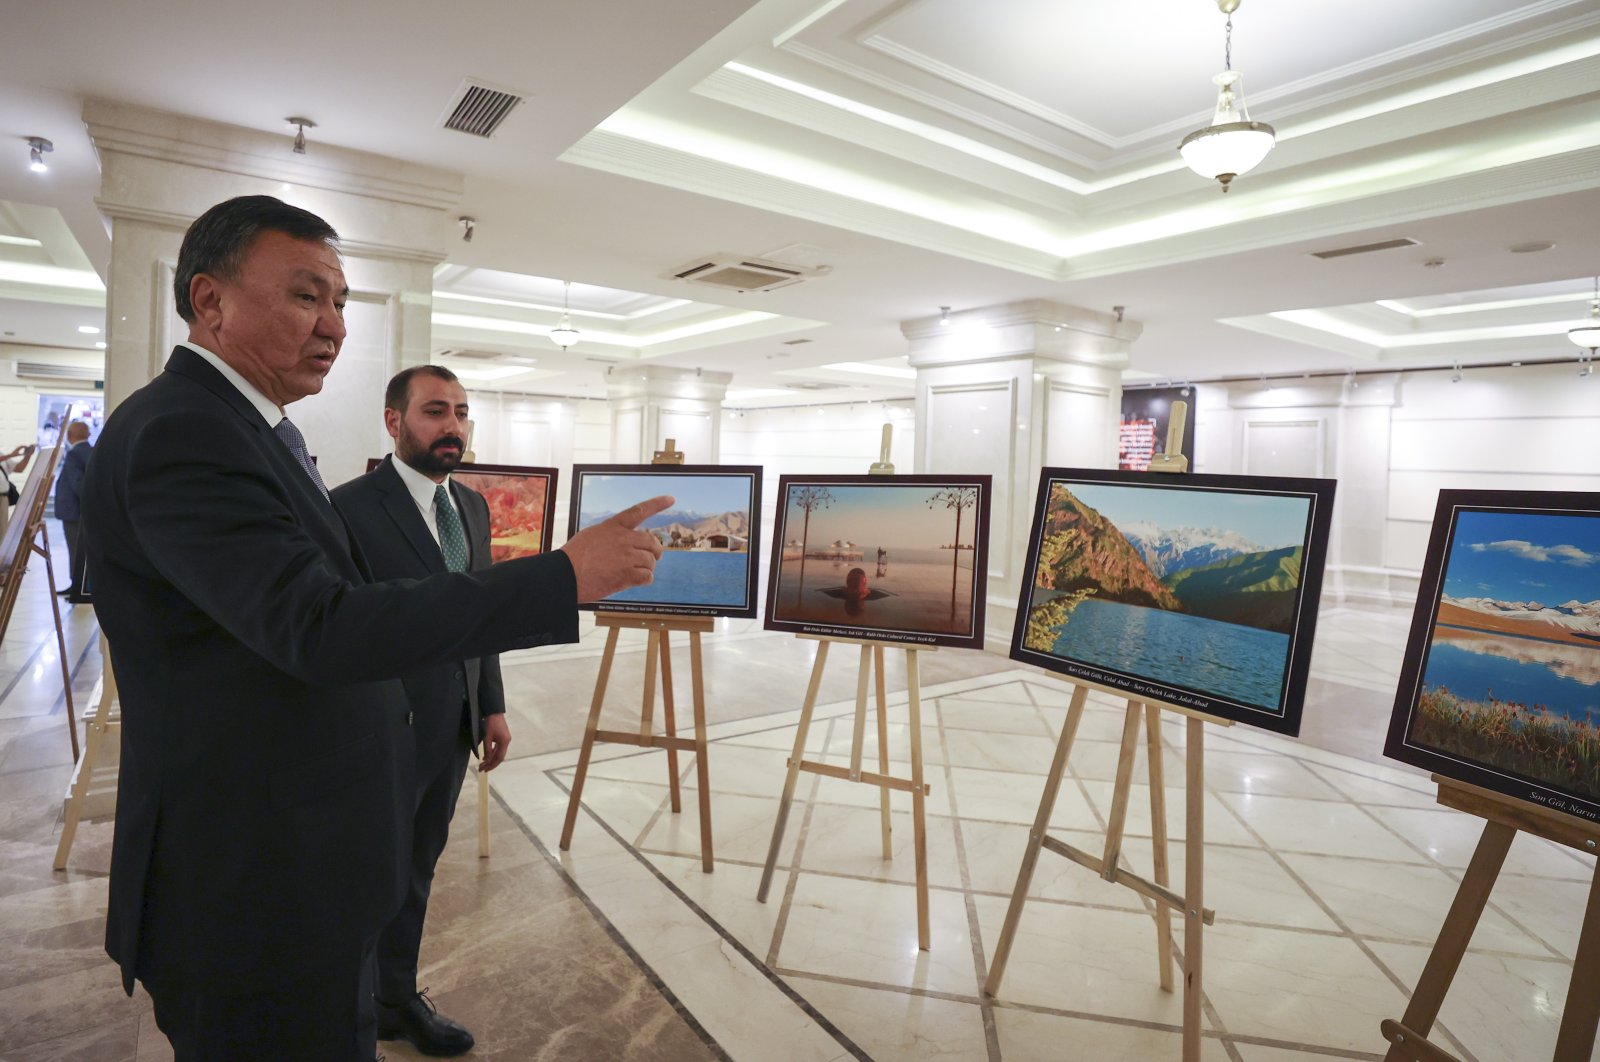 Kyrgyzstan's Ambassador Kubanychbek Omuraliev (L) visits an exhibition to mark the 30th anniversary of the Central Asian nation's independence in the capital Ankara, Turkey, Aug. 23, 2021. (AA Photo)